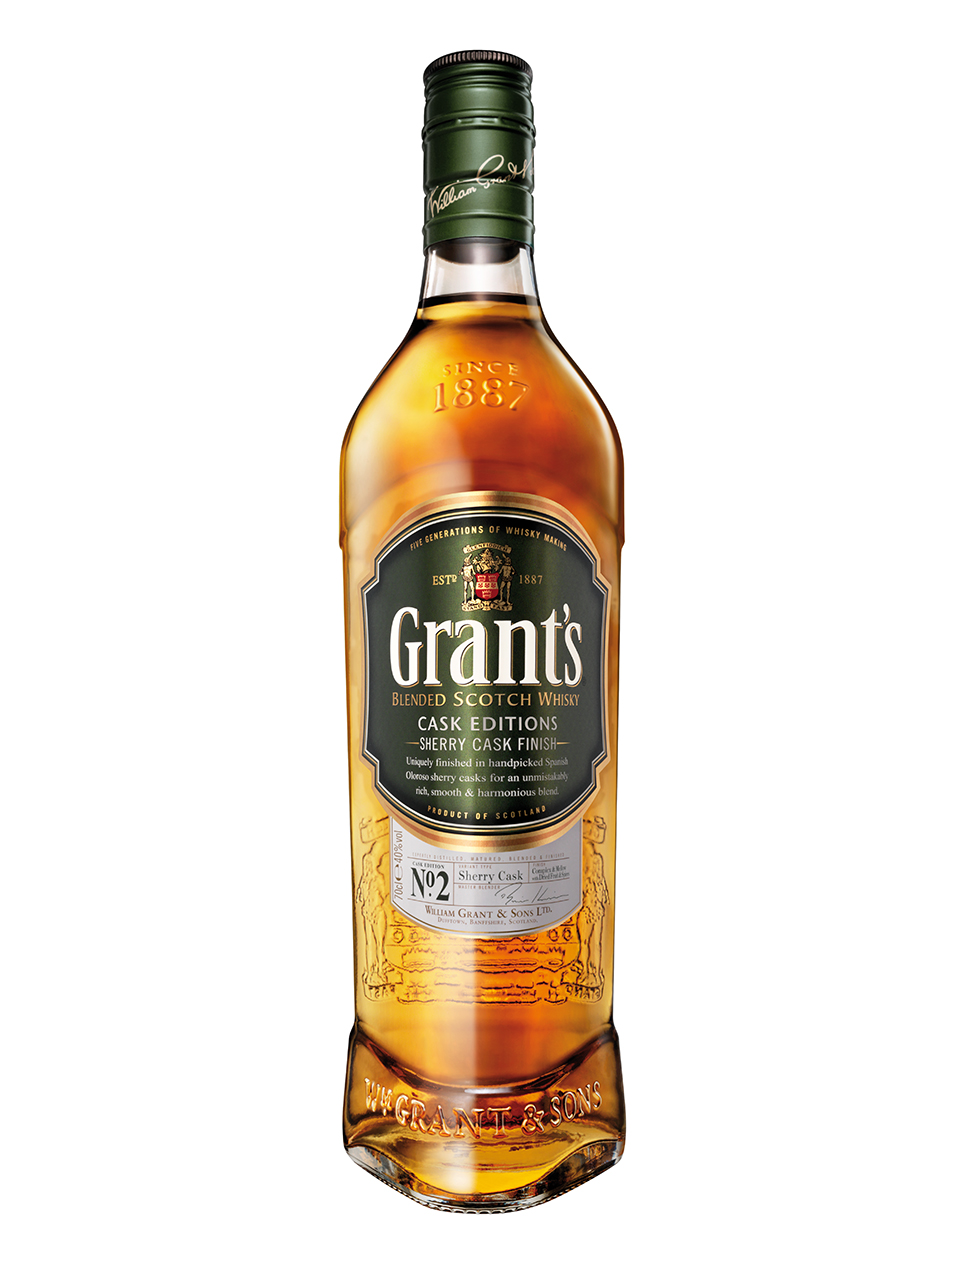 Grant's Cask Editions Sherry Cask Finish